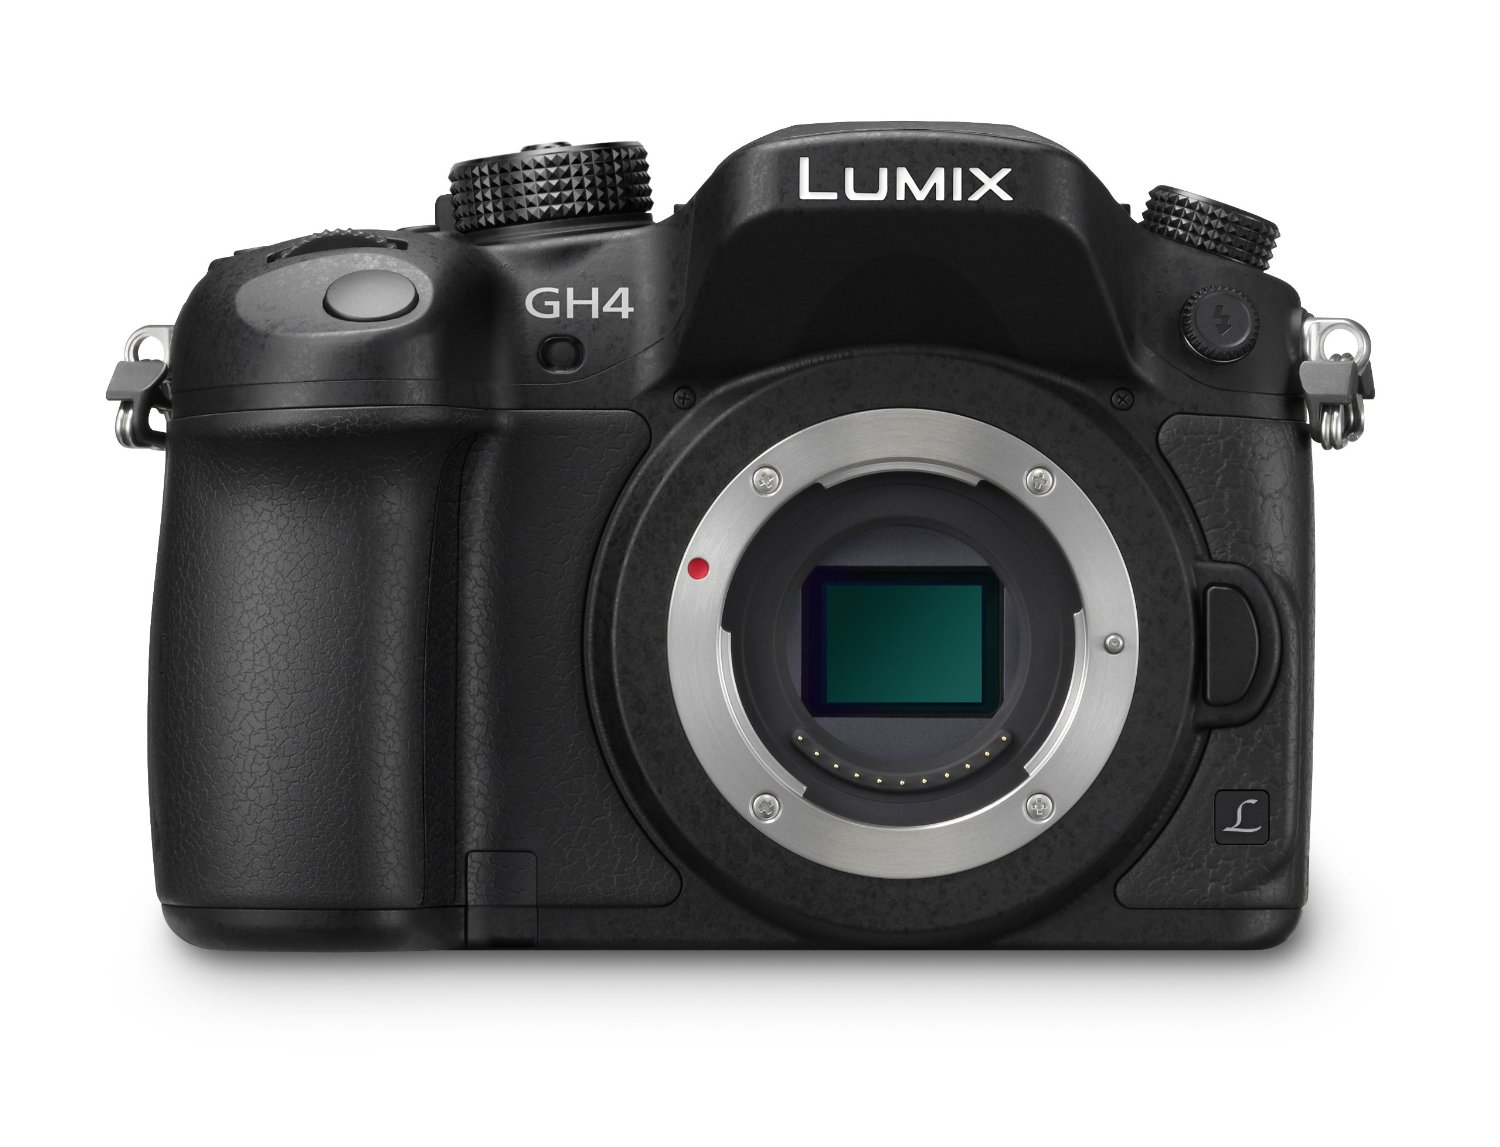 The [Panasonic GH4](https://www.amazon.com/Panasonic-DMC-GH4-Mirrorless-Pixi-Starter-Accessories/dp/B011P2OVT2?SubscriptionId=AKIAJ7T5BOVUVRD2EFYQ&linkCode=xm2&creativeASIN=B011P2OVT2&creative=165953&psc=1&camp=2025&tag=toolstoysdeals-20) is highly regarded as one of the best video cameras on the market.